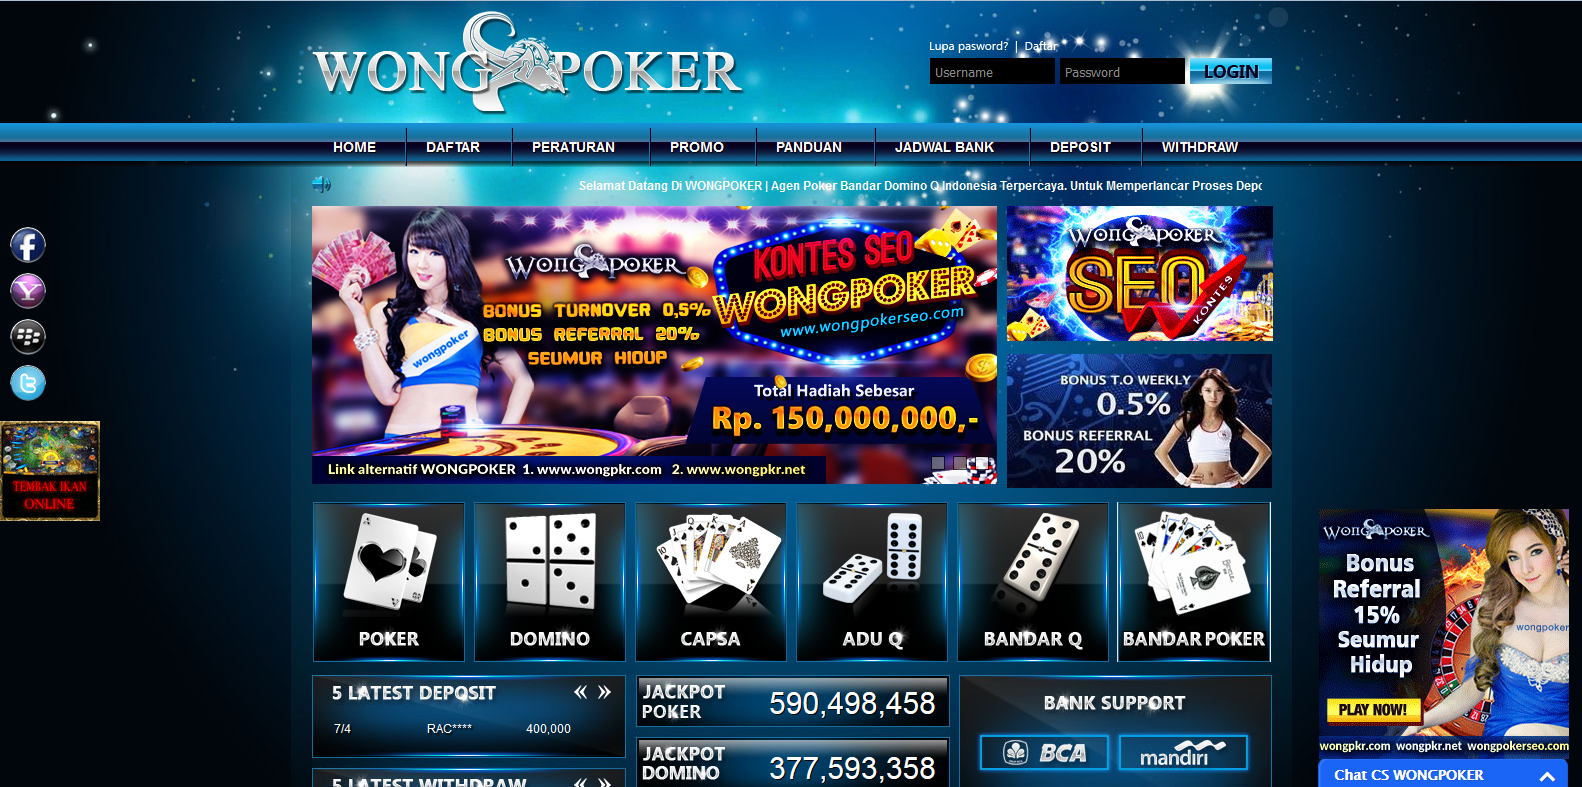 Online Poker and Poker Rewards